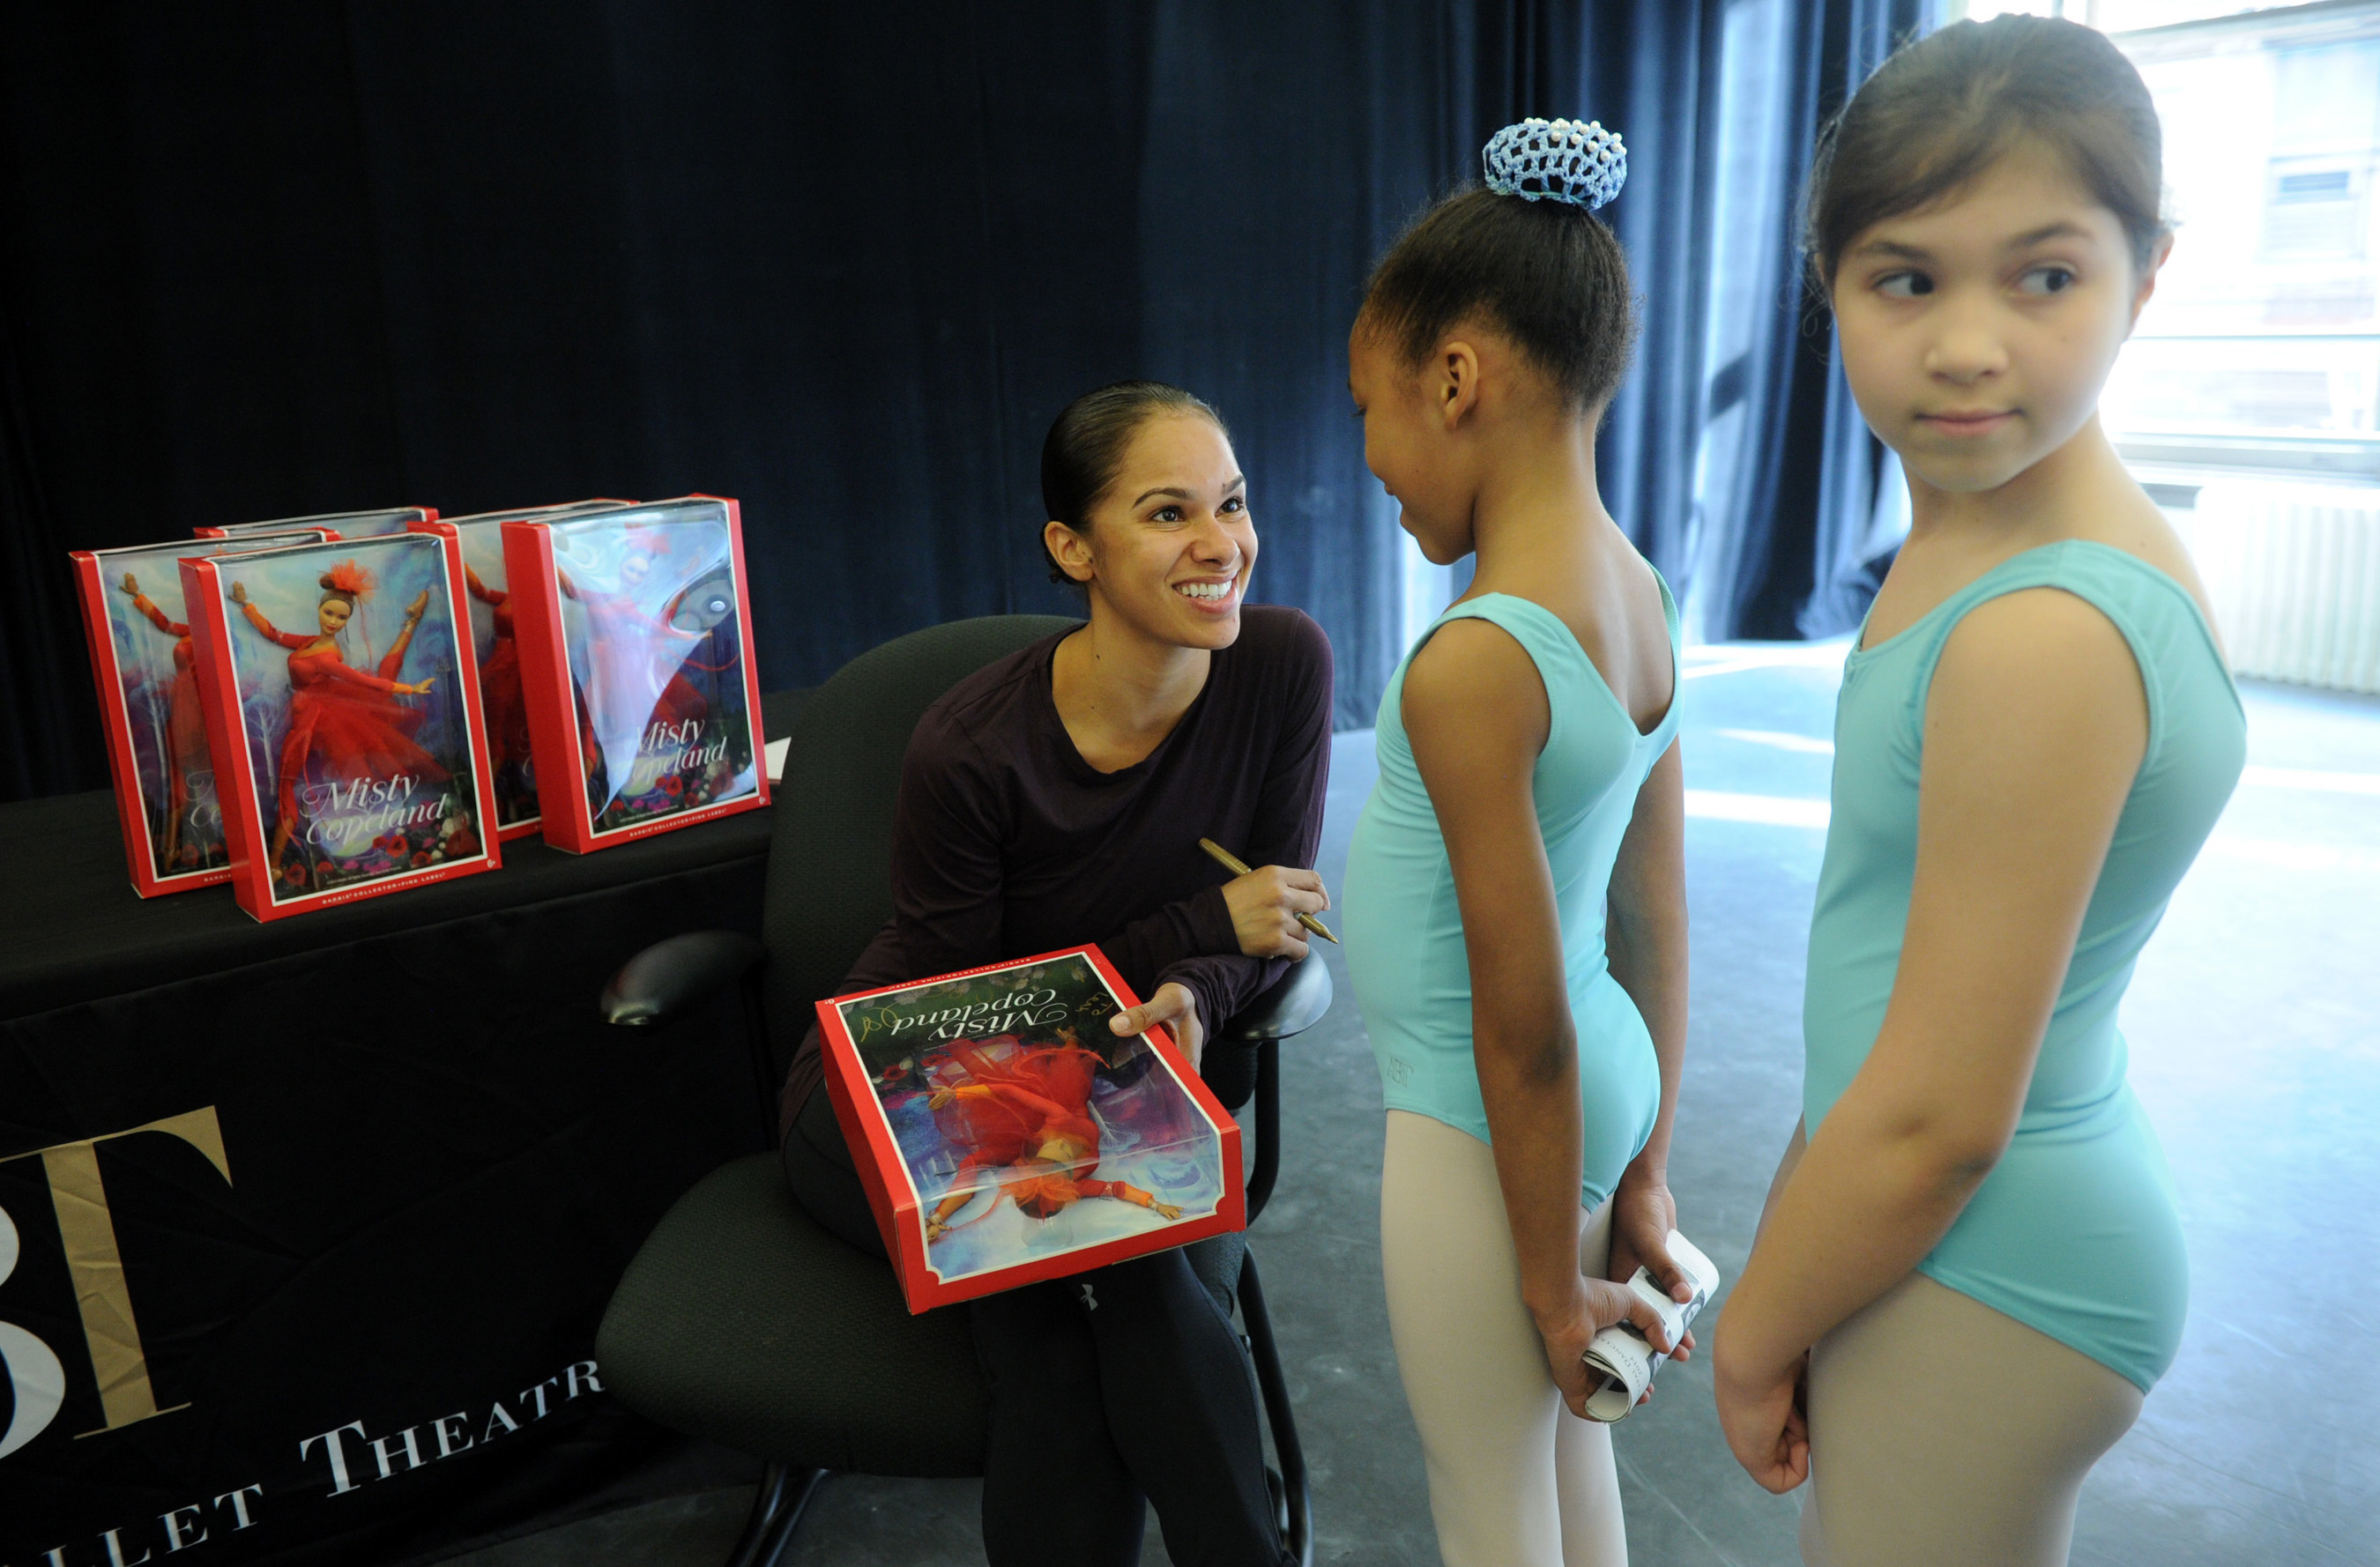 """May 2, 2016 - Misty Copeland unveils her new Barbie doll for Project Plie dancers at the American Ballet Theatre in New York City. The one-of-a-kind doll, made in Misty's likeness, continues to show girls they can be anything and is part of the brand's """"Sheroes"""" line. Credit: Diane Bondareff, AP Photographer"""